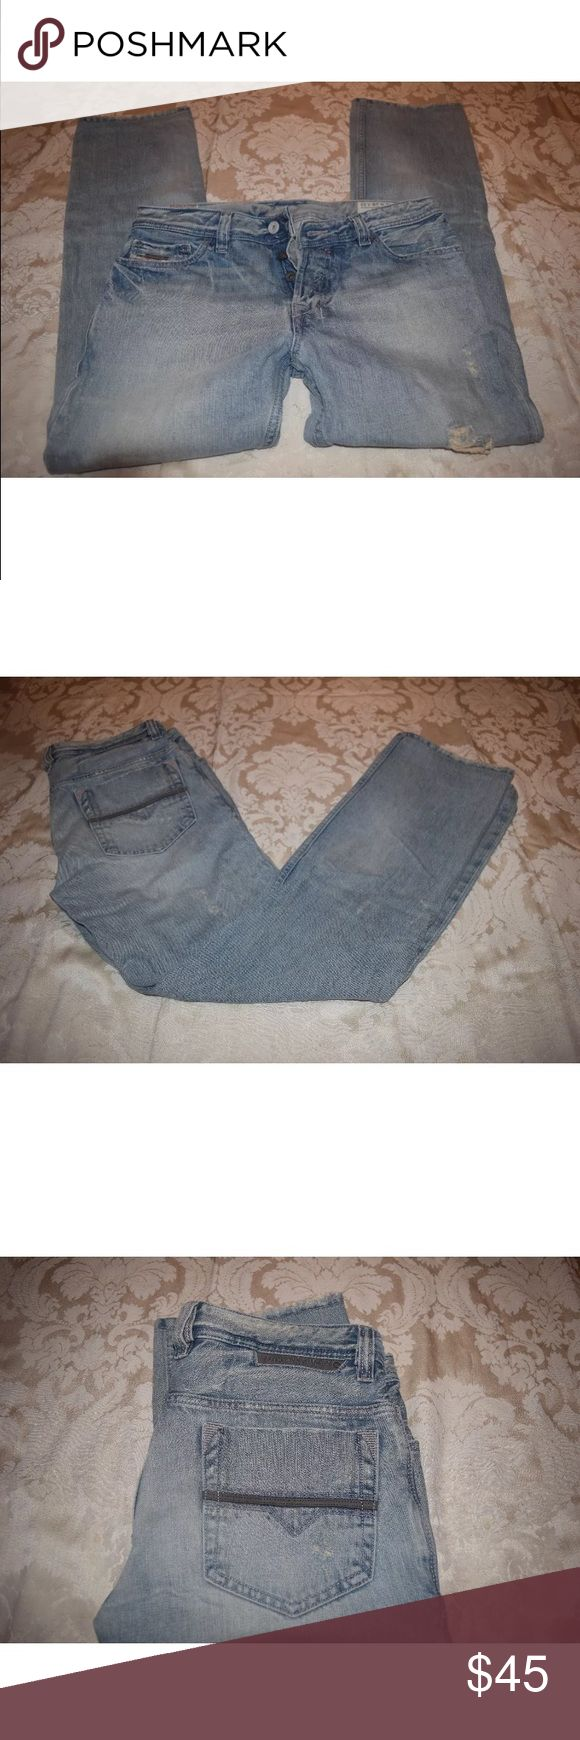 Diesel Women Jeans Safado W 28 L 32 Item: Diesel Women Jeans  Condition: Used. Has unthreading throughout threading of jeans but this is the style of them. At the bottom though they are torn some from being stepped on. Please see photos.  Size Per Tag: W28 L32  Wash 008TK  100% Cotton  Made in Italy  Inseam: 29 inches Diesel Jeans Straight Leg